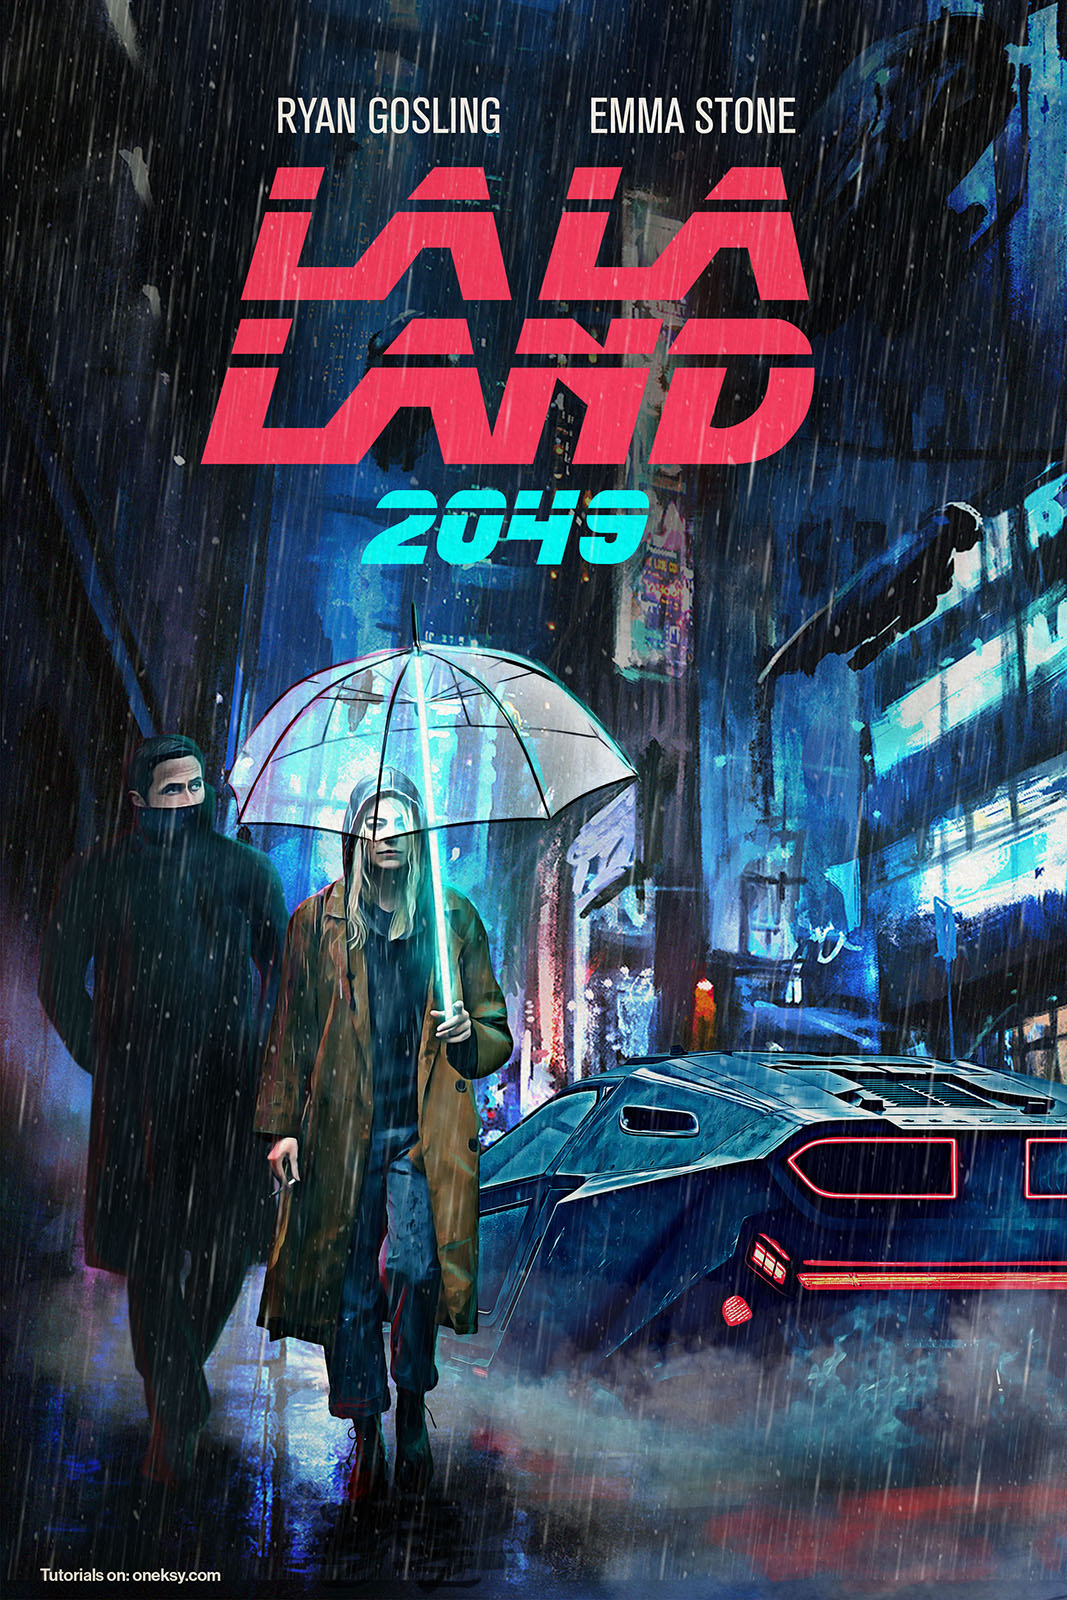 Video creating the blade runner x la la land mashup poster oneksy drag the slidey thing to see the source image before and after photoshop baditri Gallery